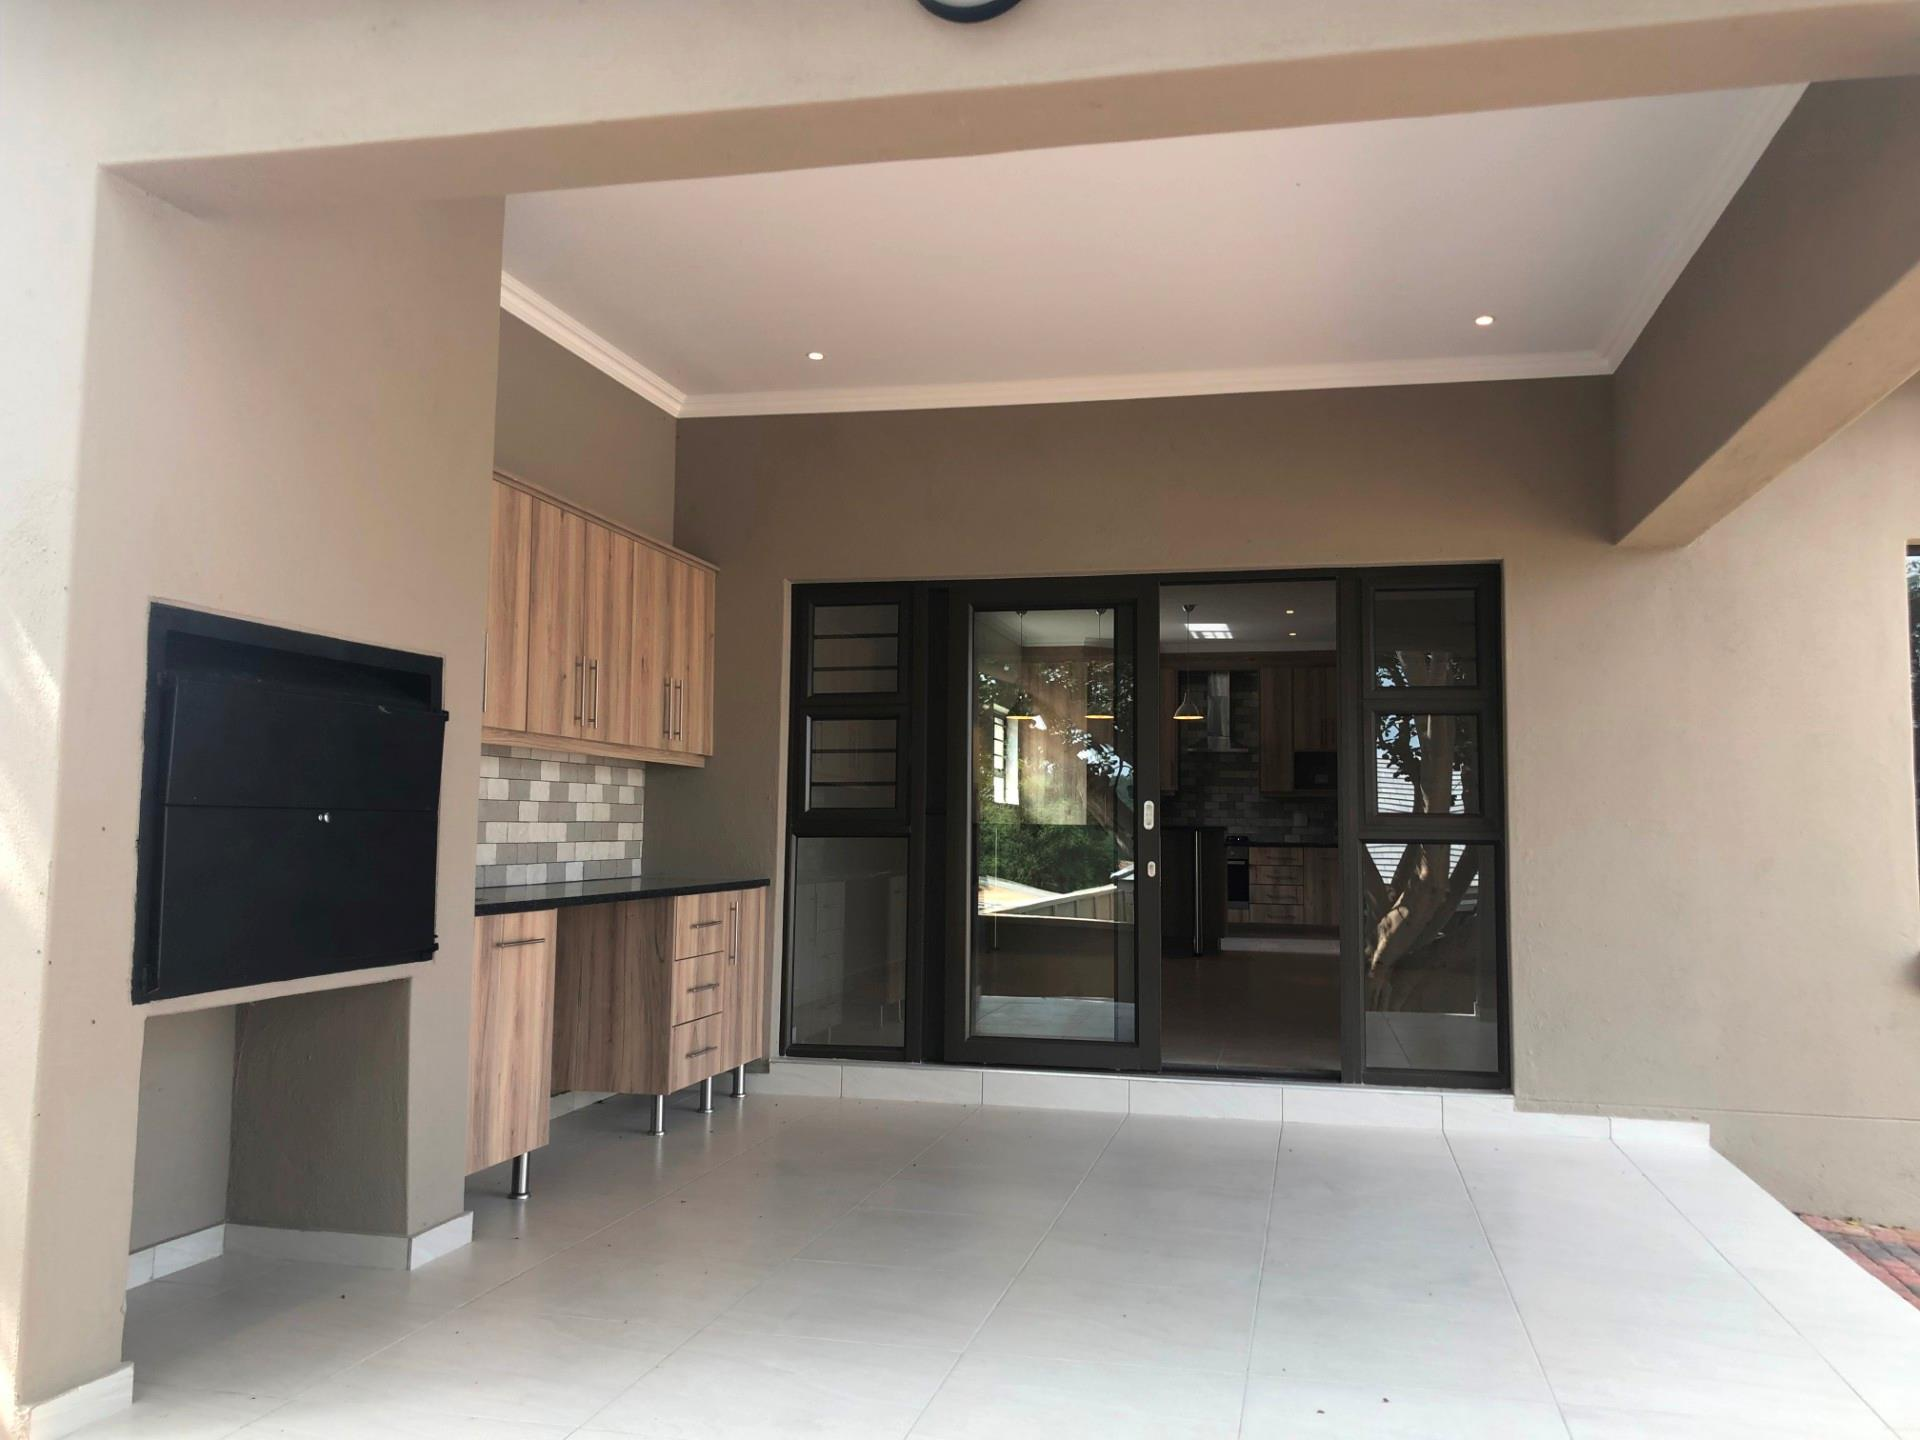 3 Bedroom House For Sale in Elawini Lifestyle Estate